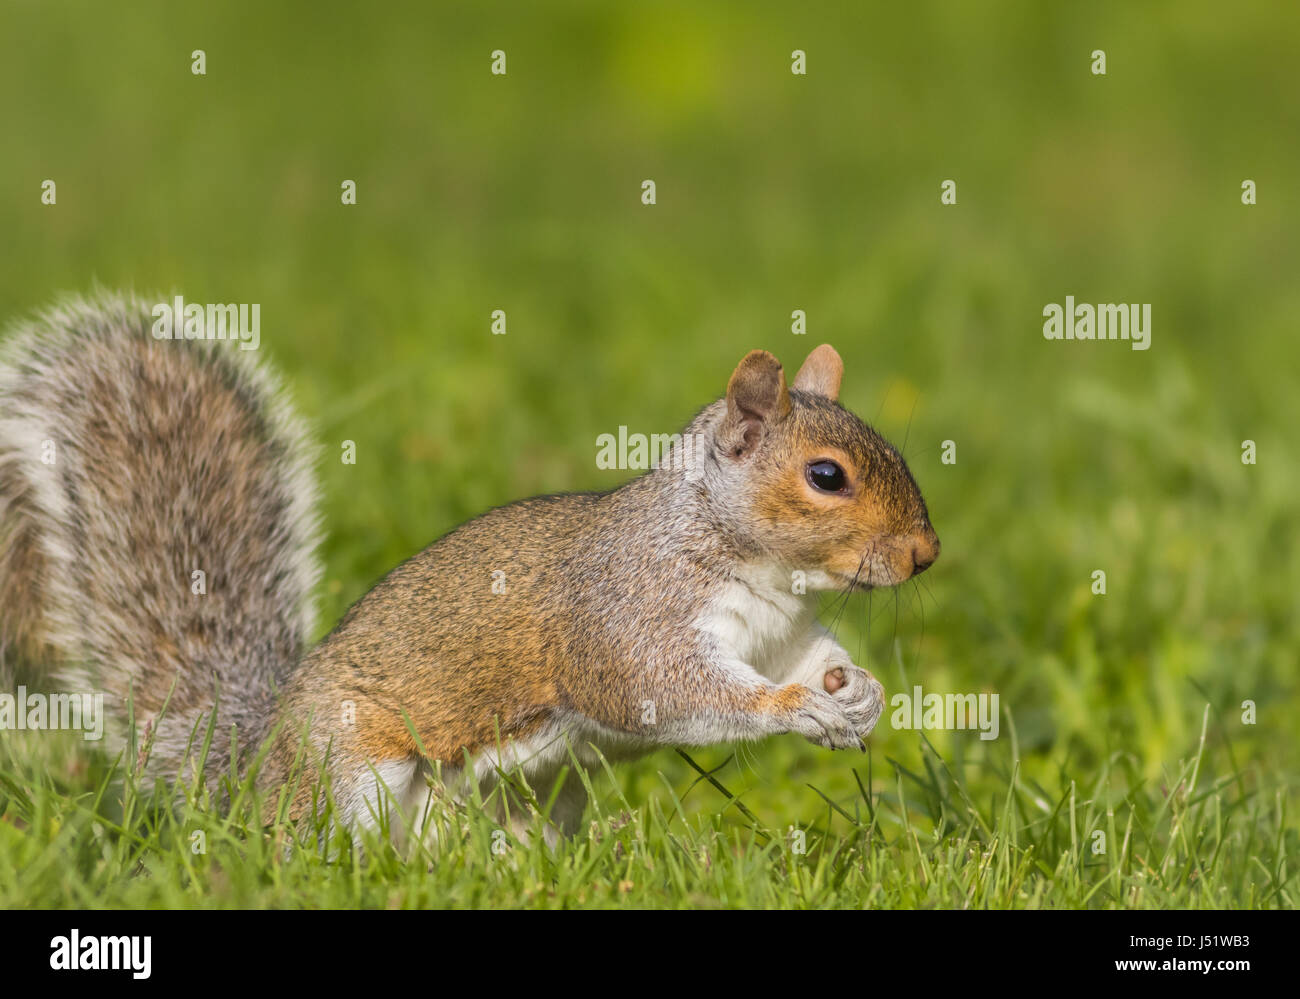 Adorable and funny Eastern Gray Squirrel (Sciurus carolinensis) on a bright day with room for copy on side - Stock Image